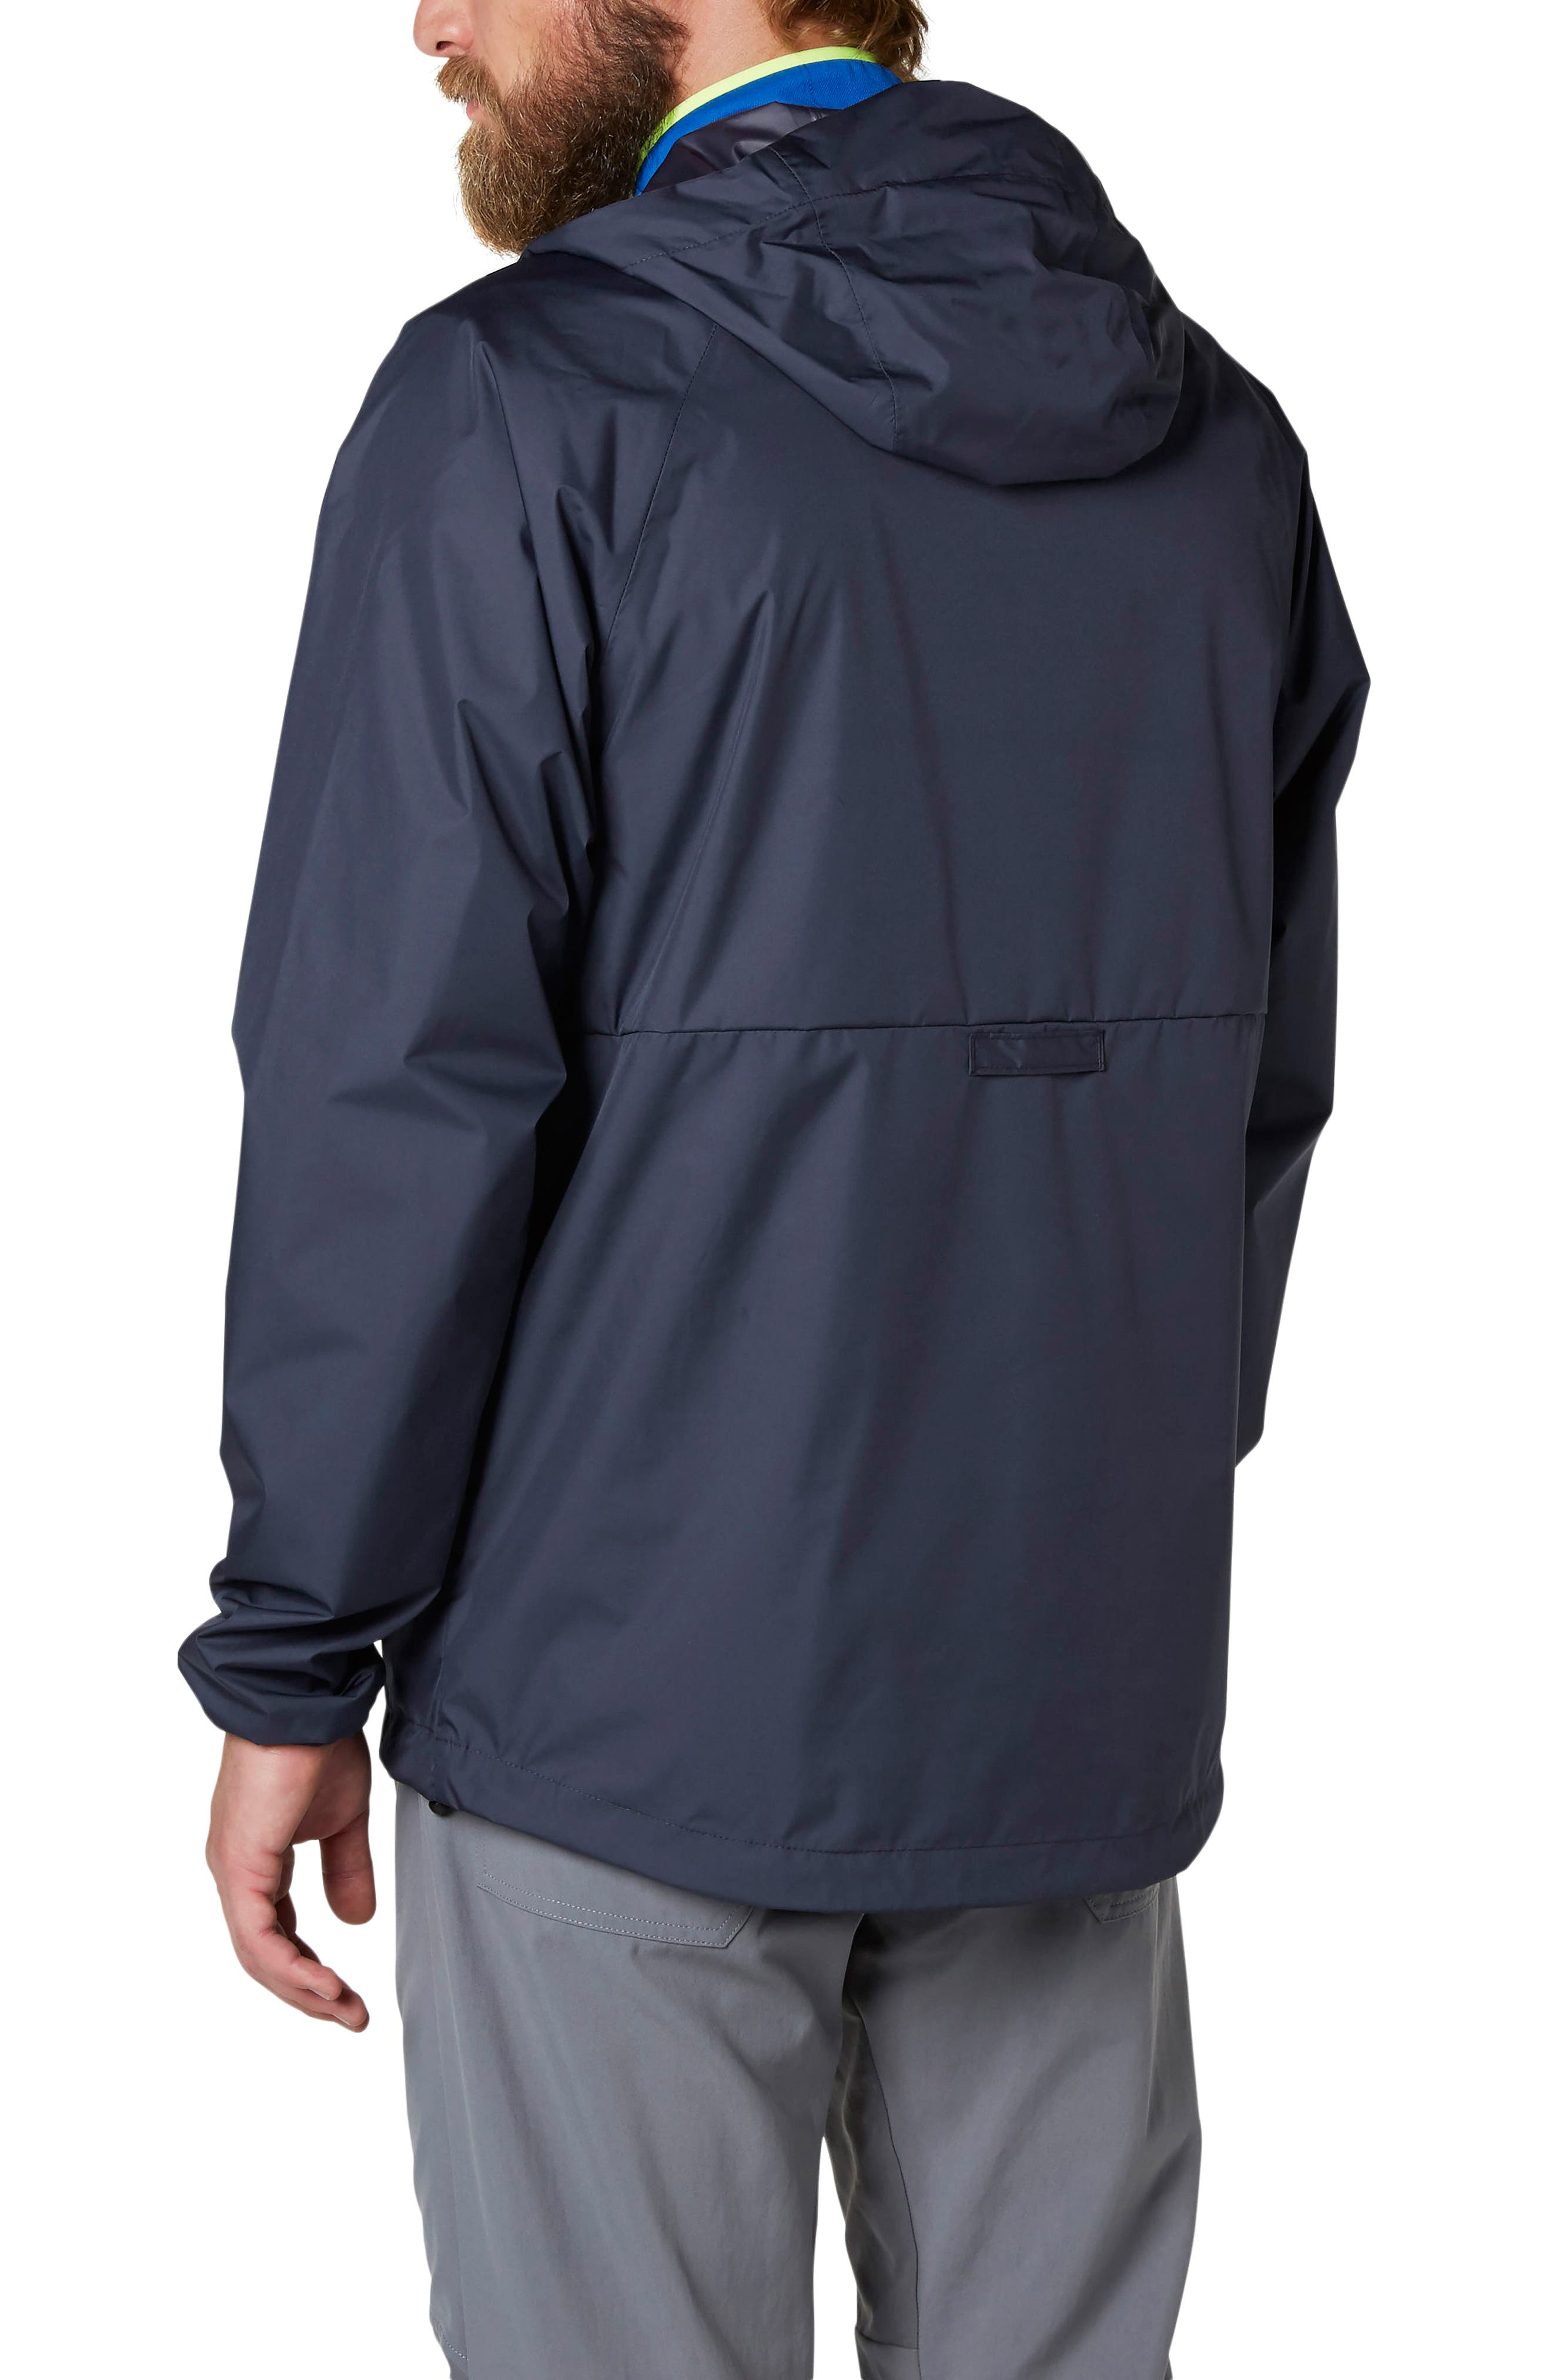 Loke Packable Anorak,                             Alternate thumbnail 2, color,                             Graphite Blue